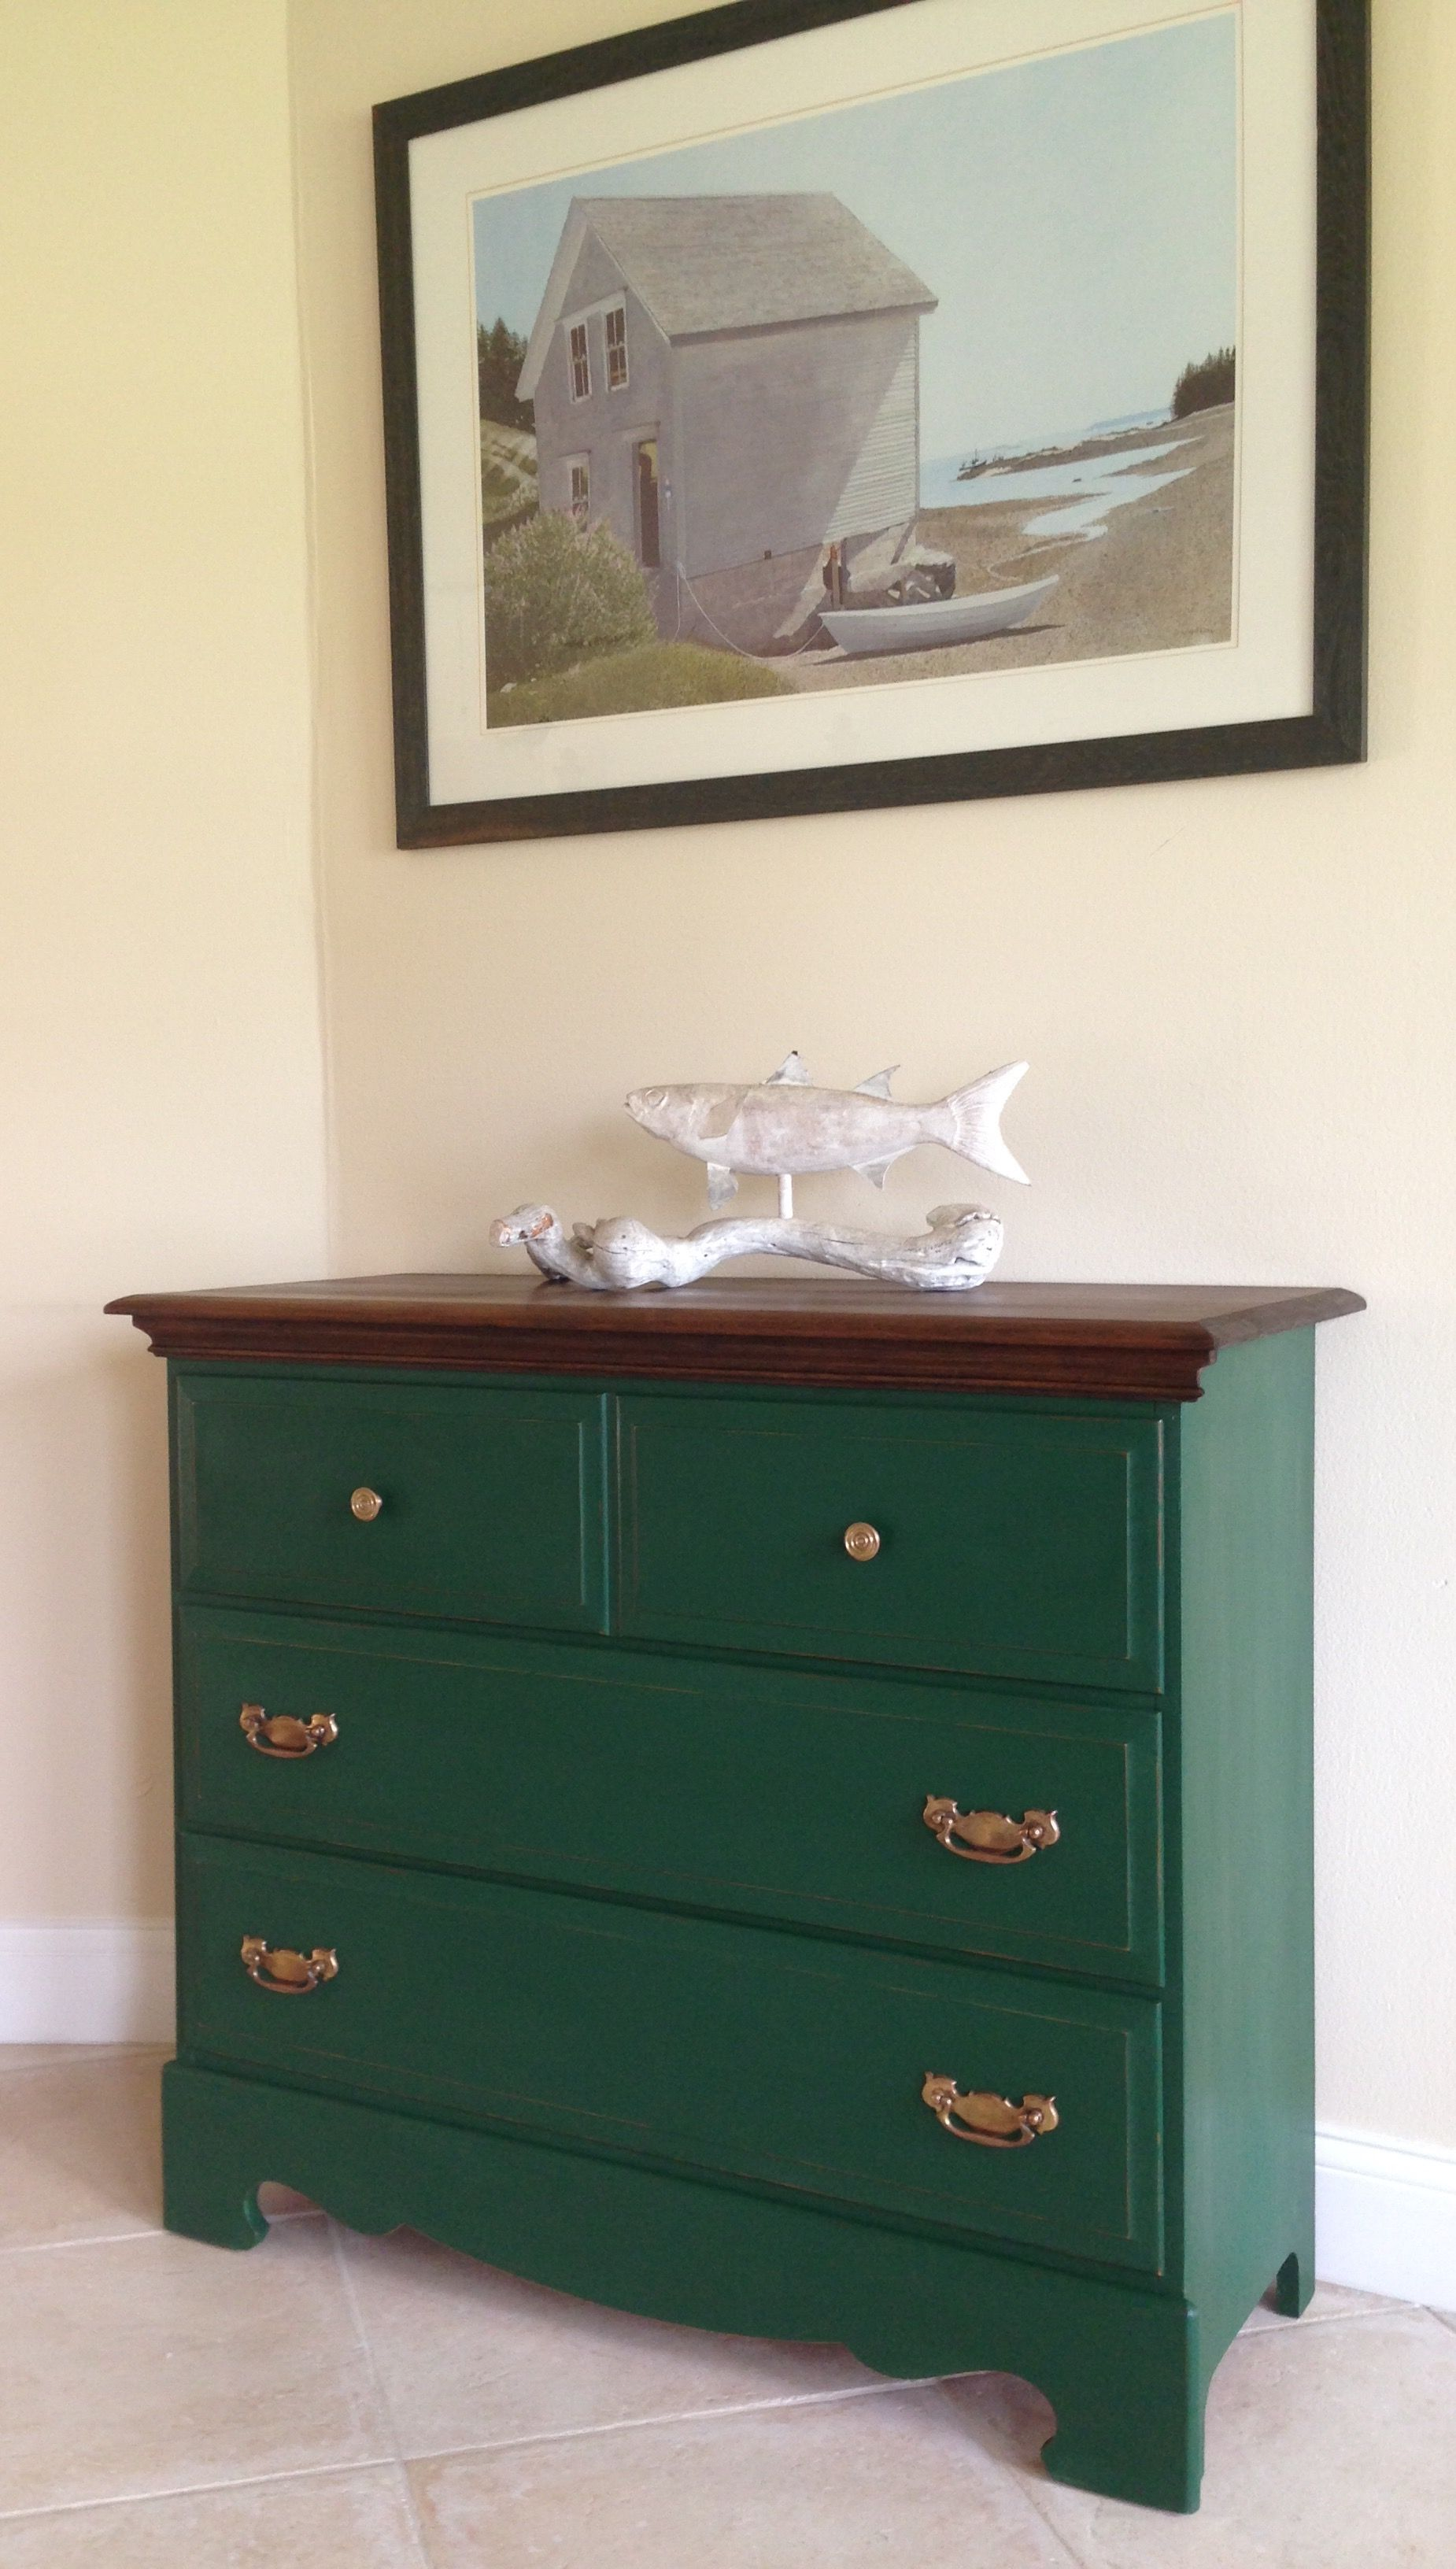 Annie Sloan Amsterdam Green Painted Furniture